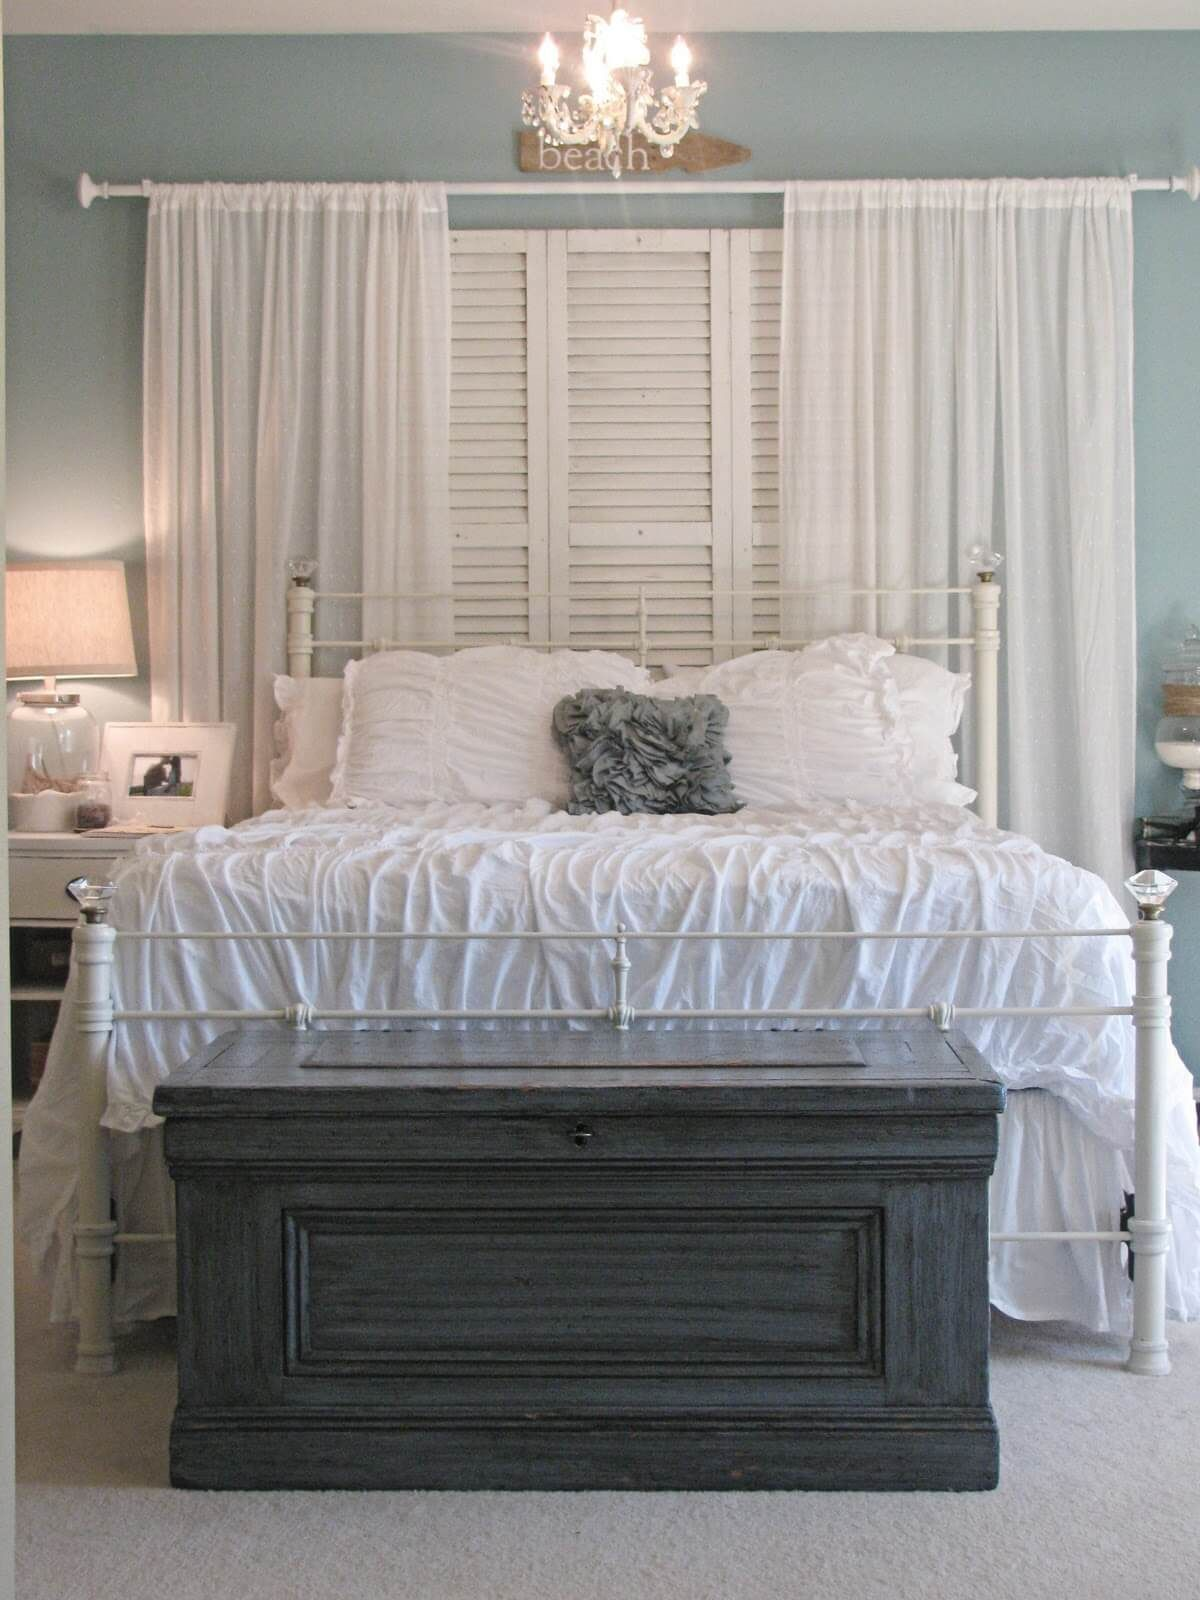 Old window over bed   ways decorating with old shutters can make your home charming